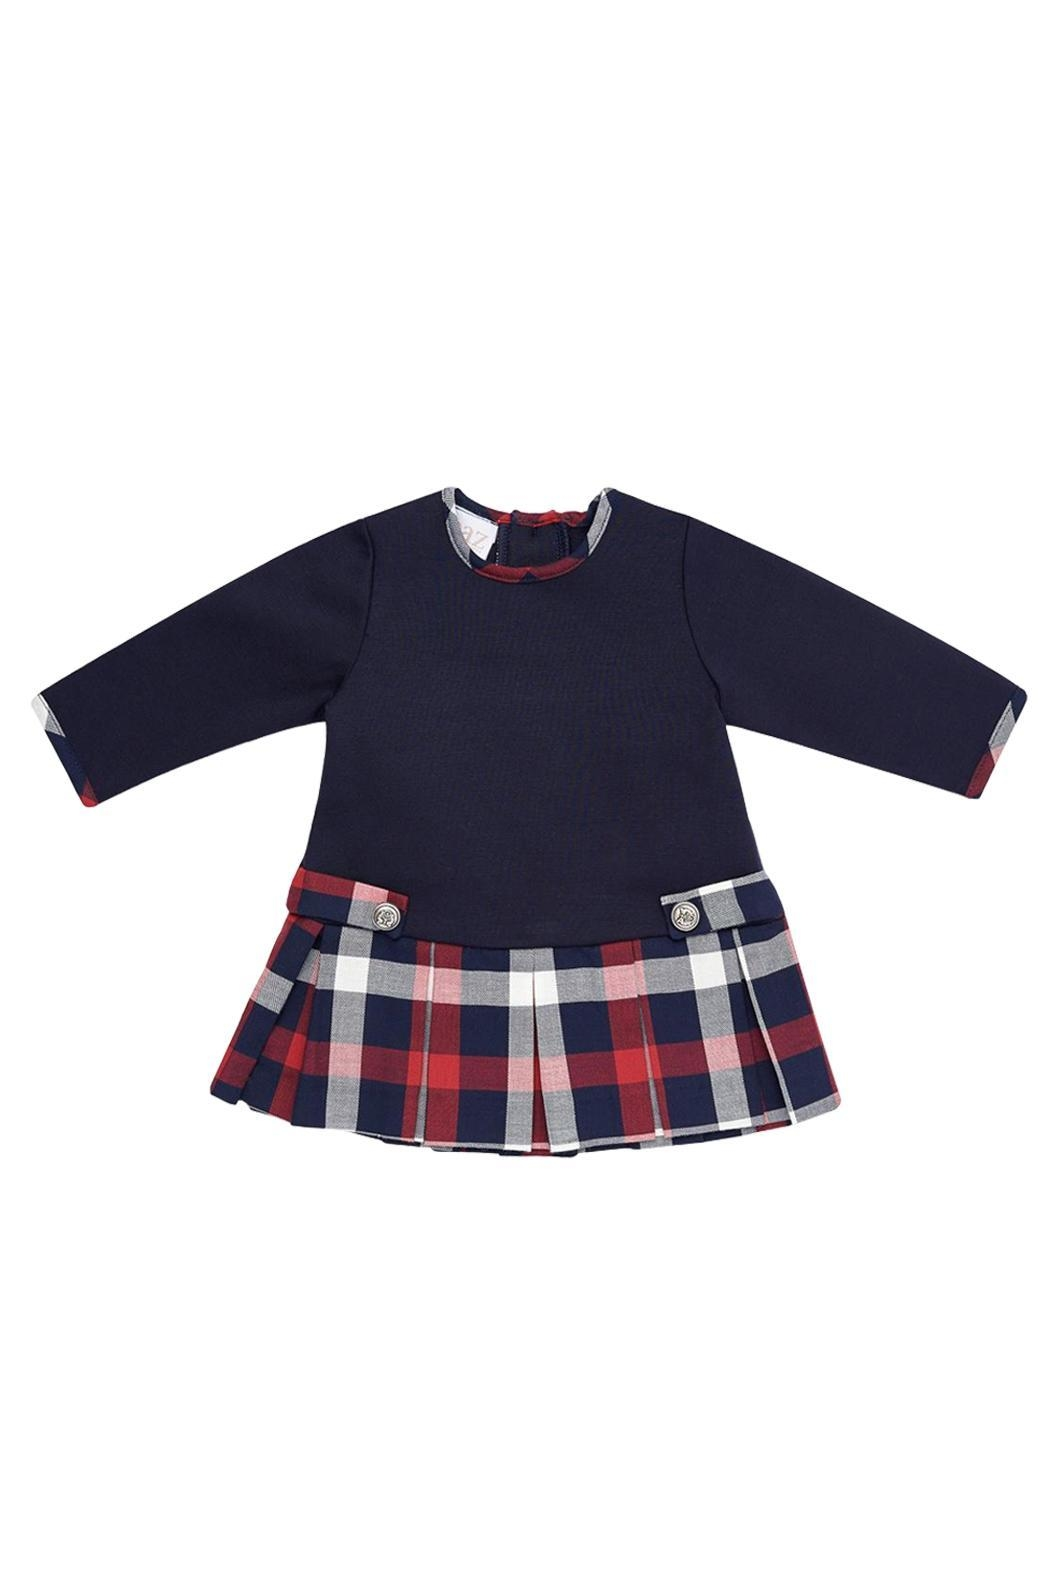 Paz Rodriguez Navy Tartan Dress - Main Image